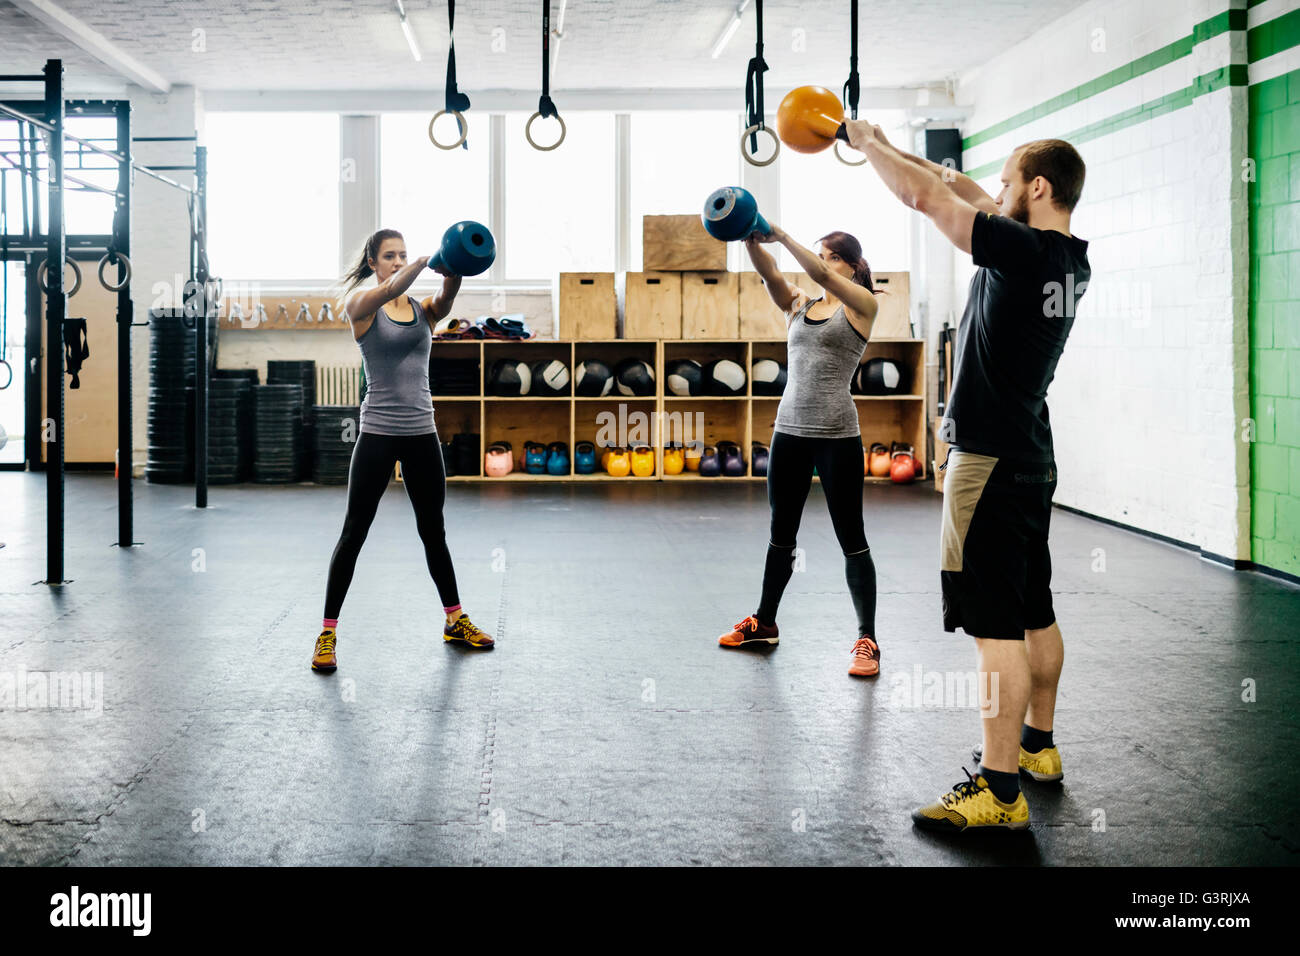 Germany, Young women and man swinging kettlebells in gym - Stock Image